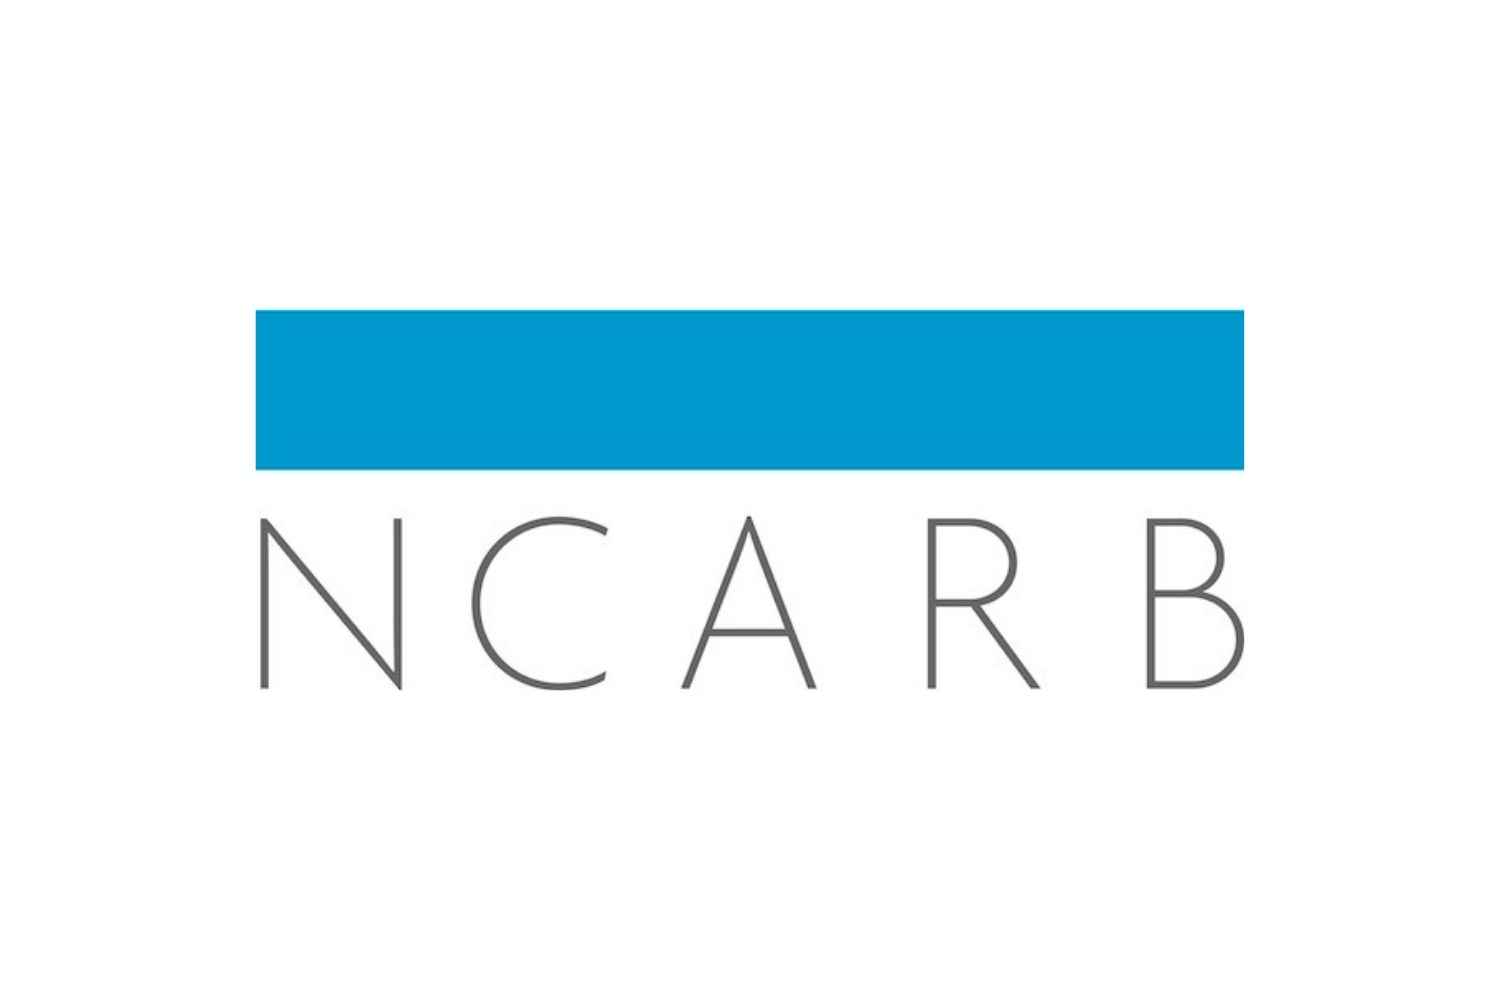 Resource_NCARB.jpg